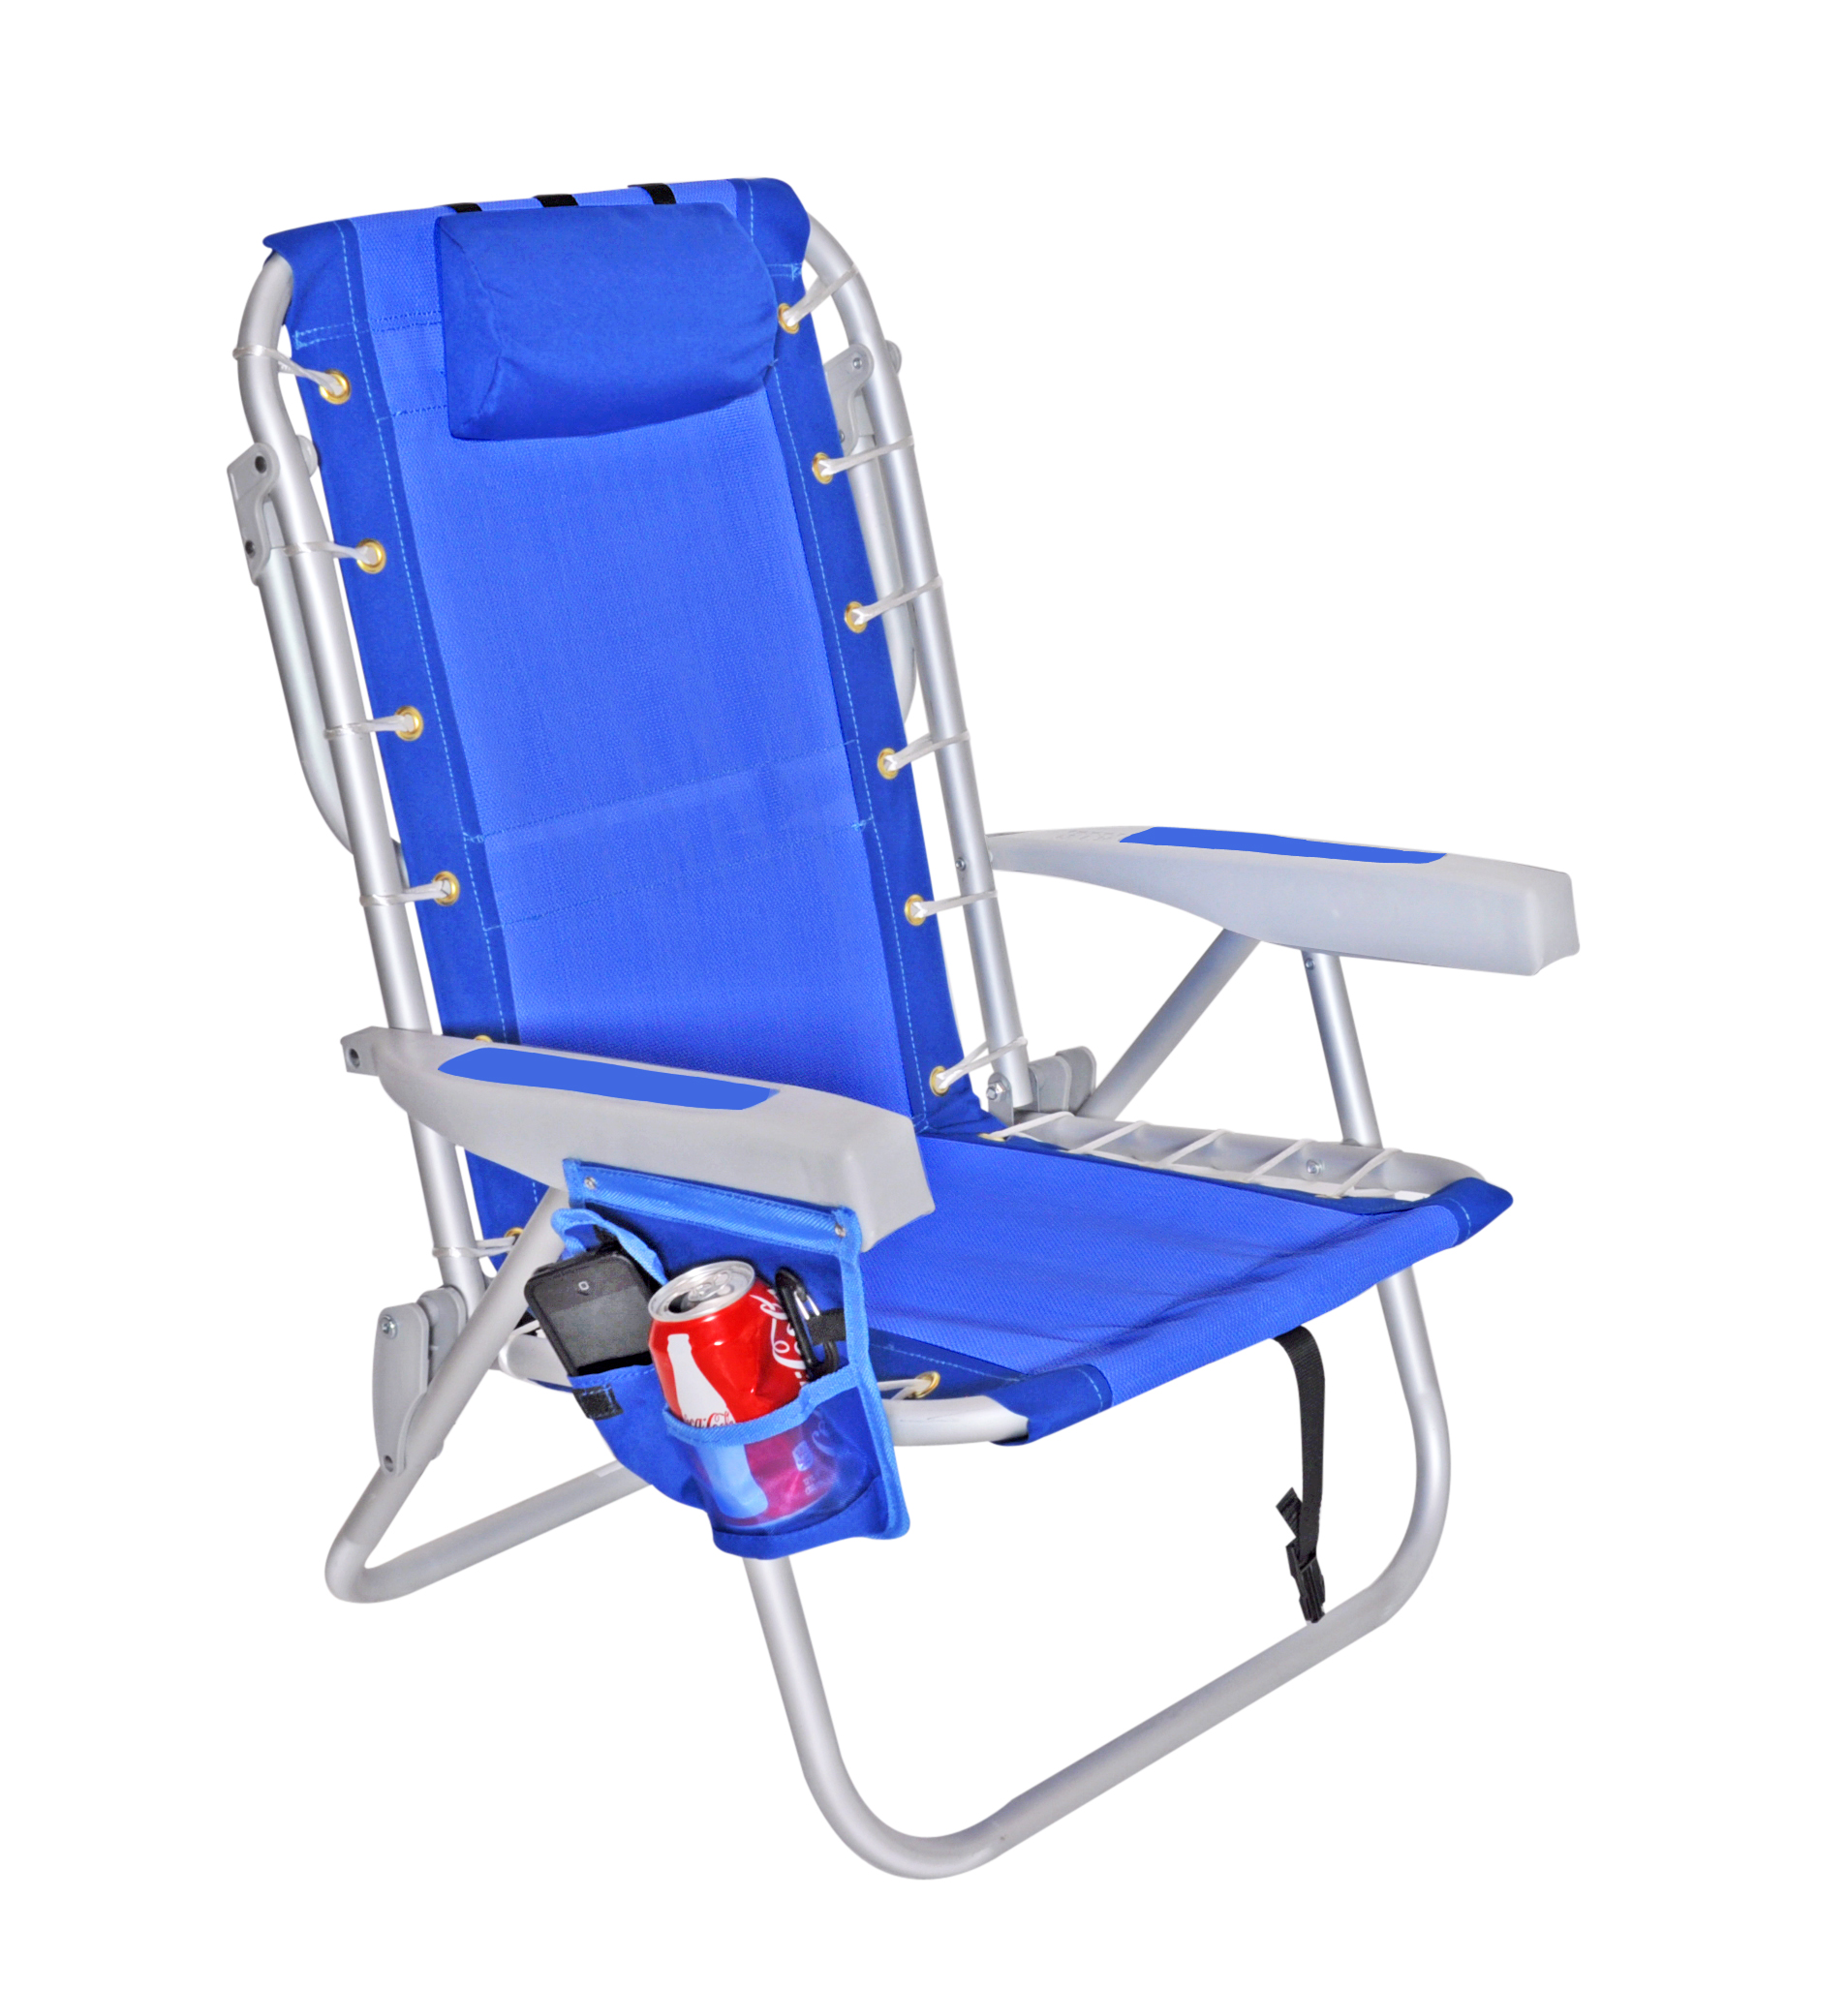 Rio 5 pos LayFlat Ultimate Backpack Beach Chair w/ cooler  sc 1 st  Walmart & Rio 5 pos LayFlat Ultimate Backpack Beach Chair w/ cooler - Walmart.com